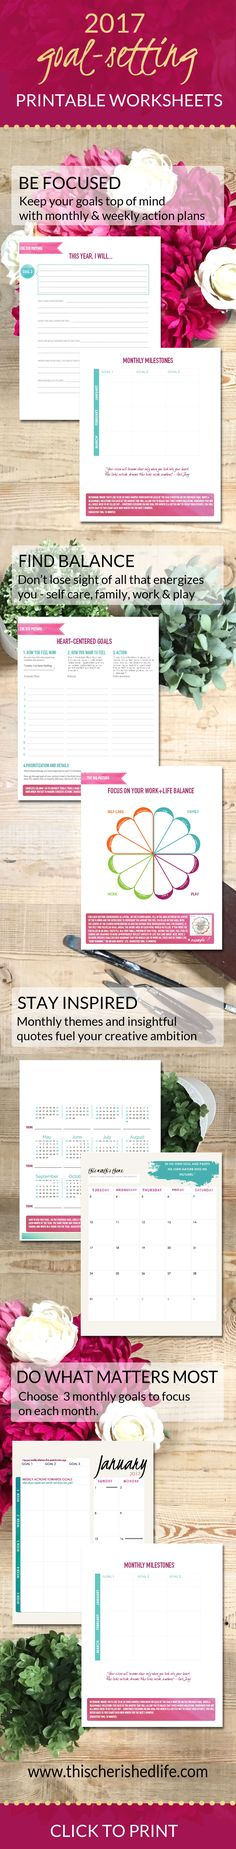 The power of goal-setting with printable goal-setting worksheets for creatives and working moms